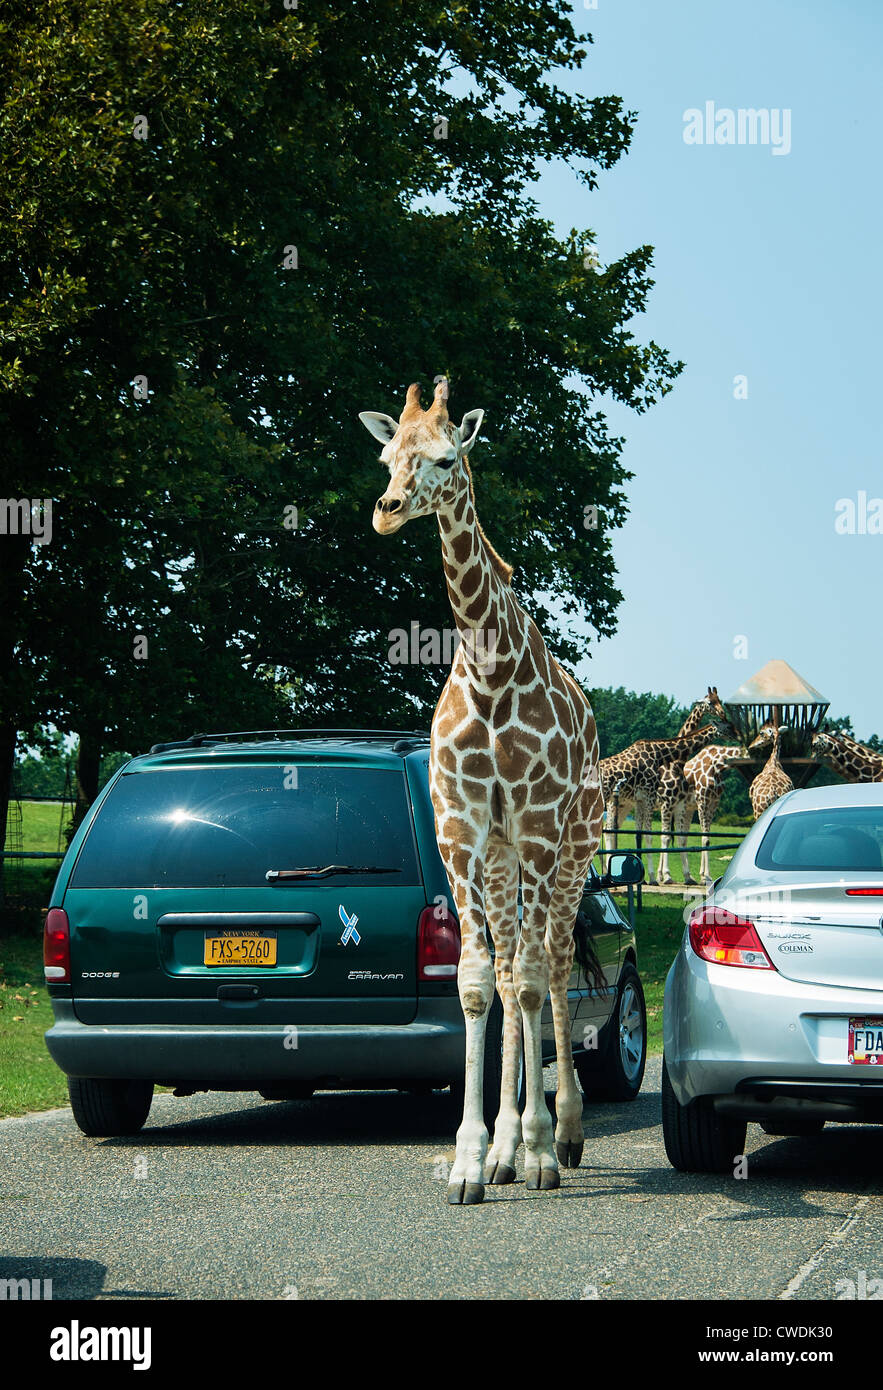 Giraffe greeting park visitors, Safari, Six Flags, New Jersey, USA - Stock Image